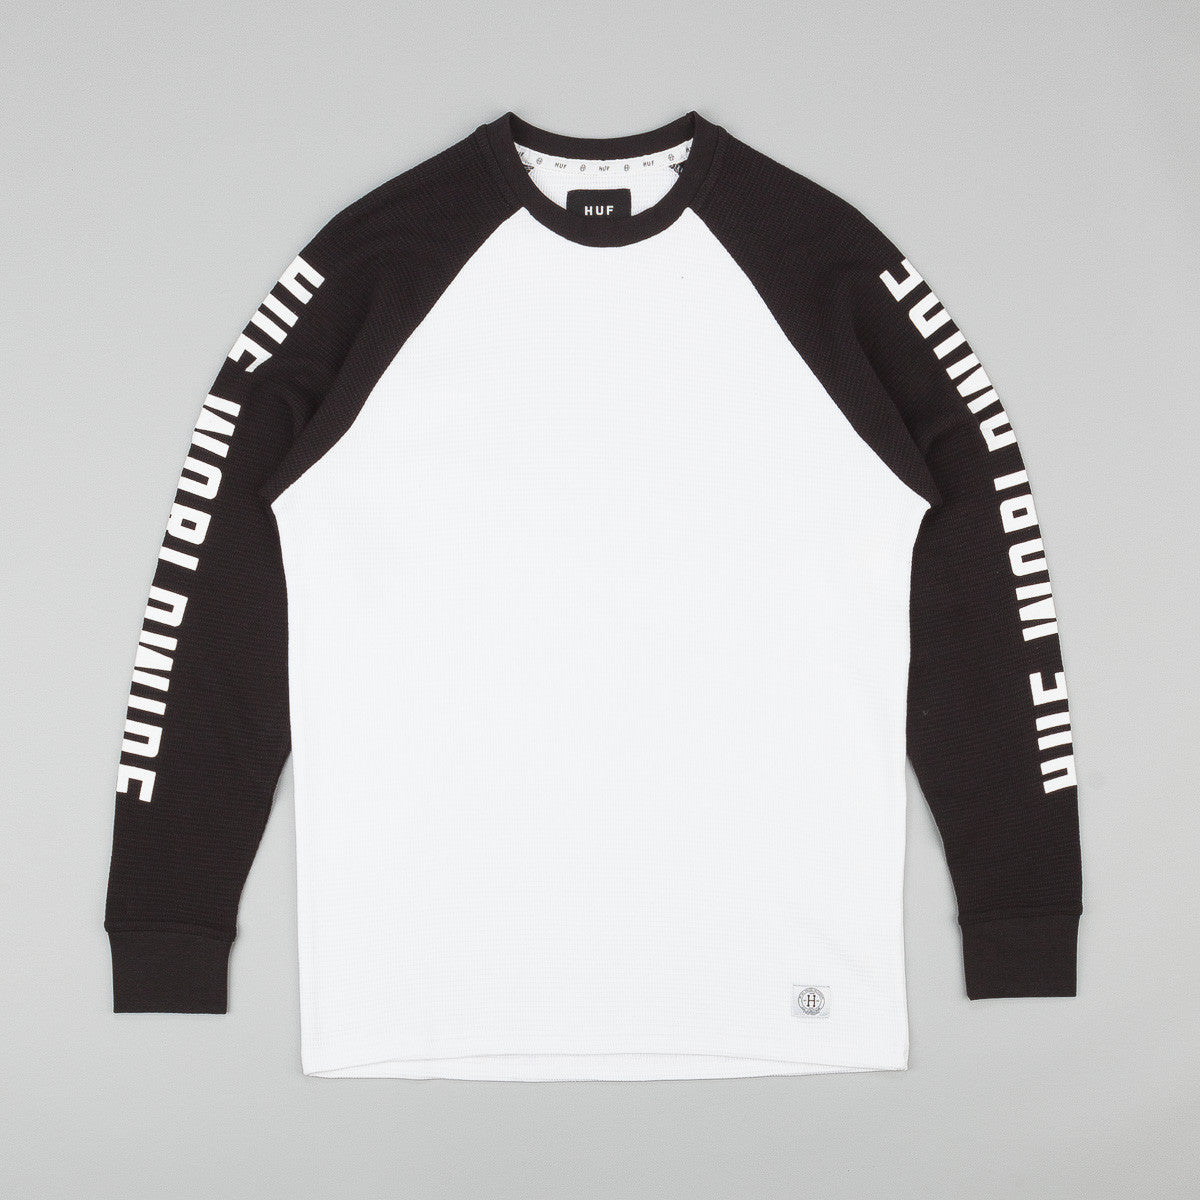 HUF Clement Long Sleeve Thermal Raglan Shirt - Black